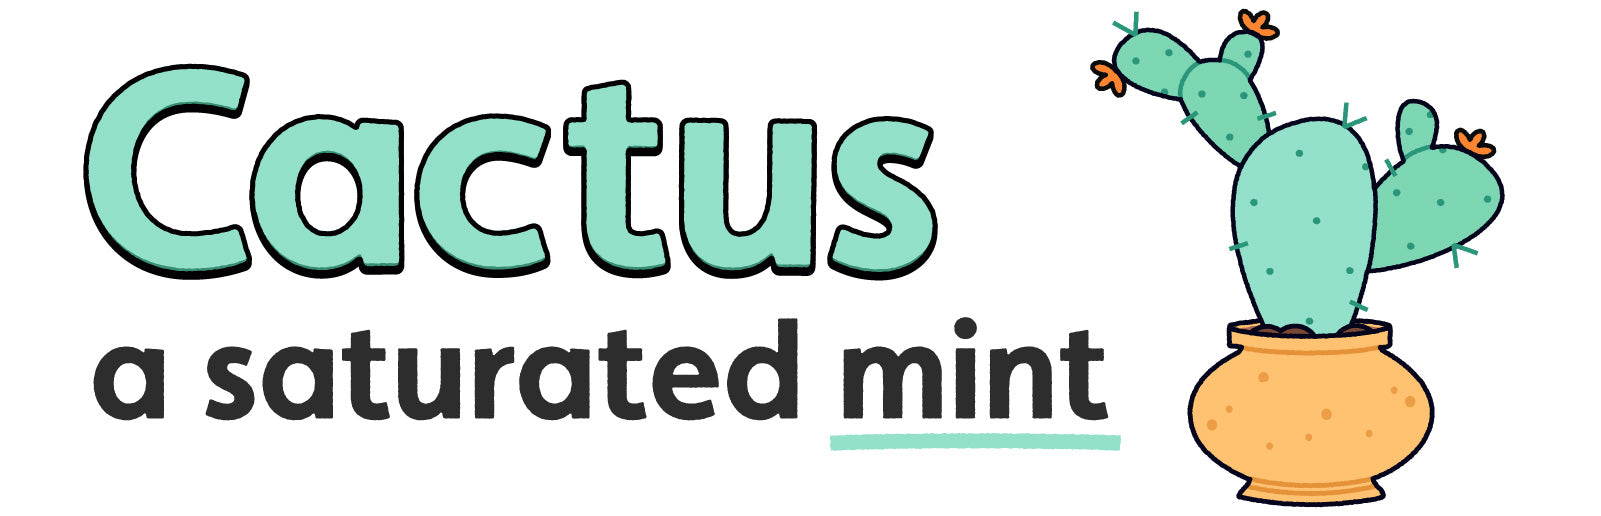 Word art: Cactus, a saturated mint